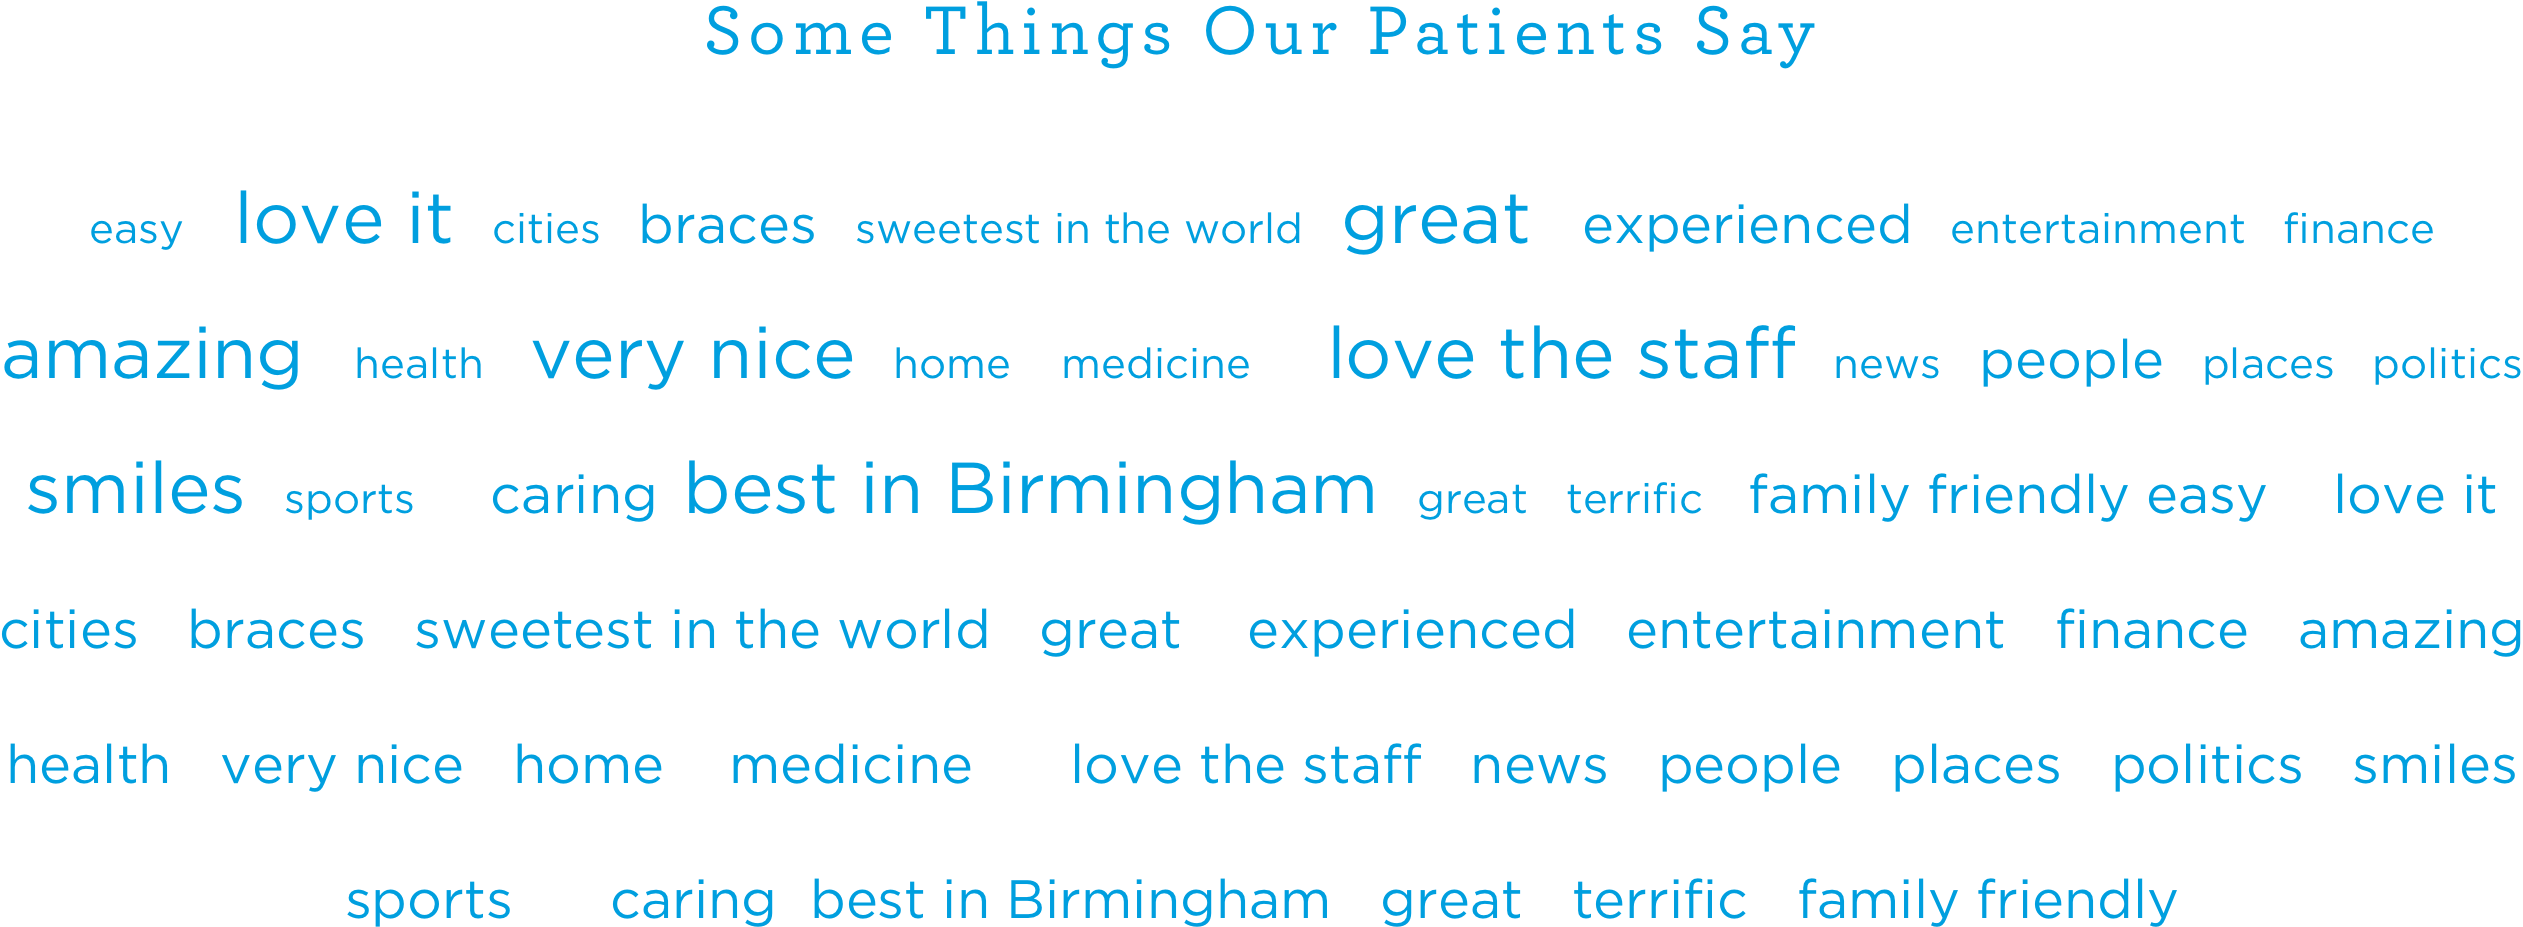 patients reviews